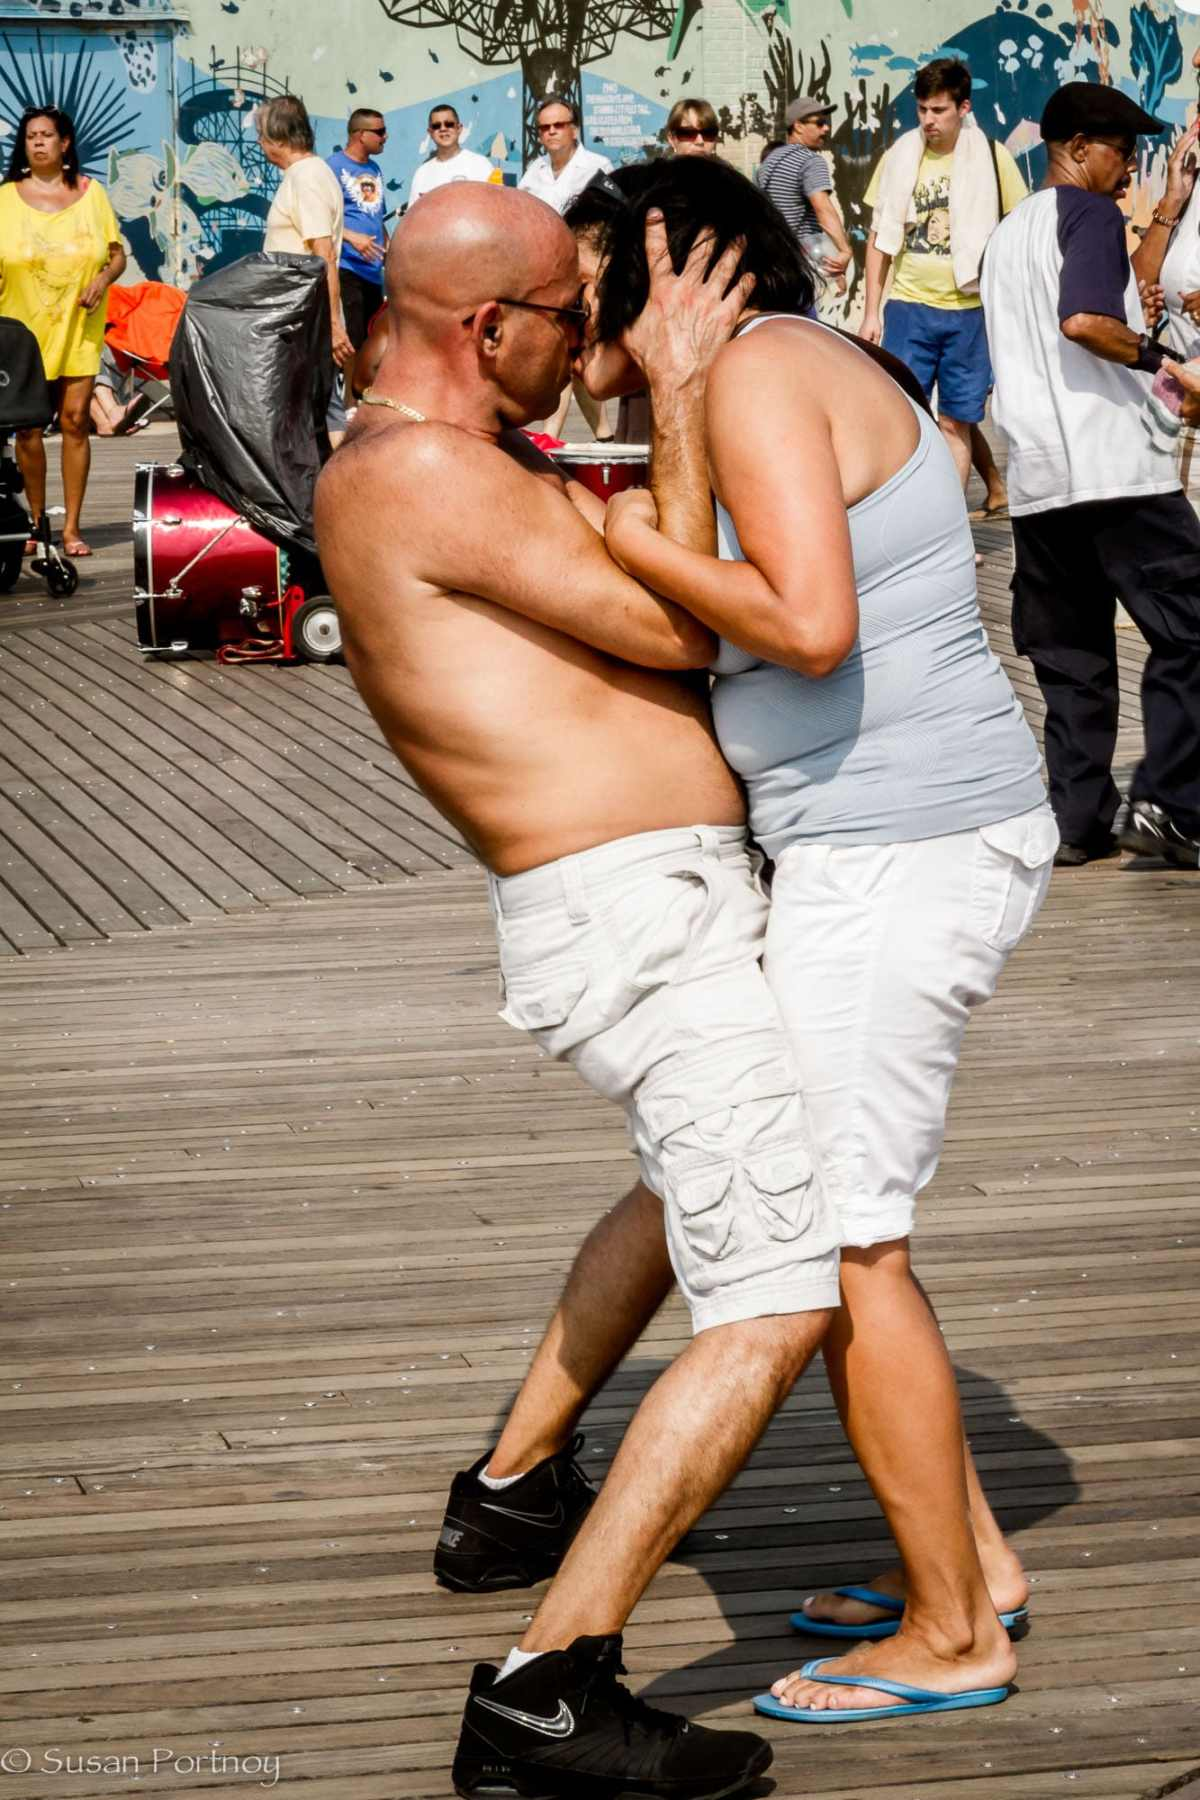 Two people kissing while dancing on Coney Island